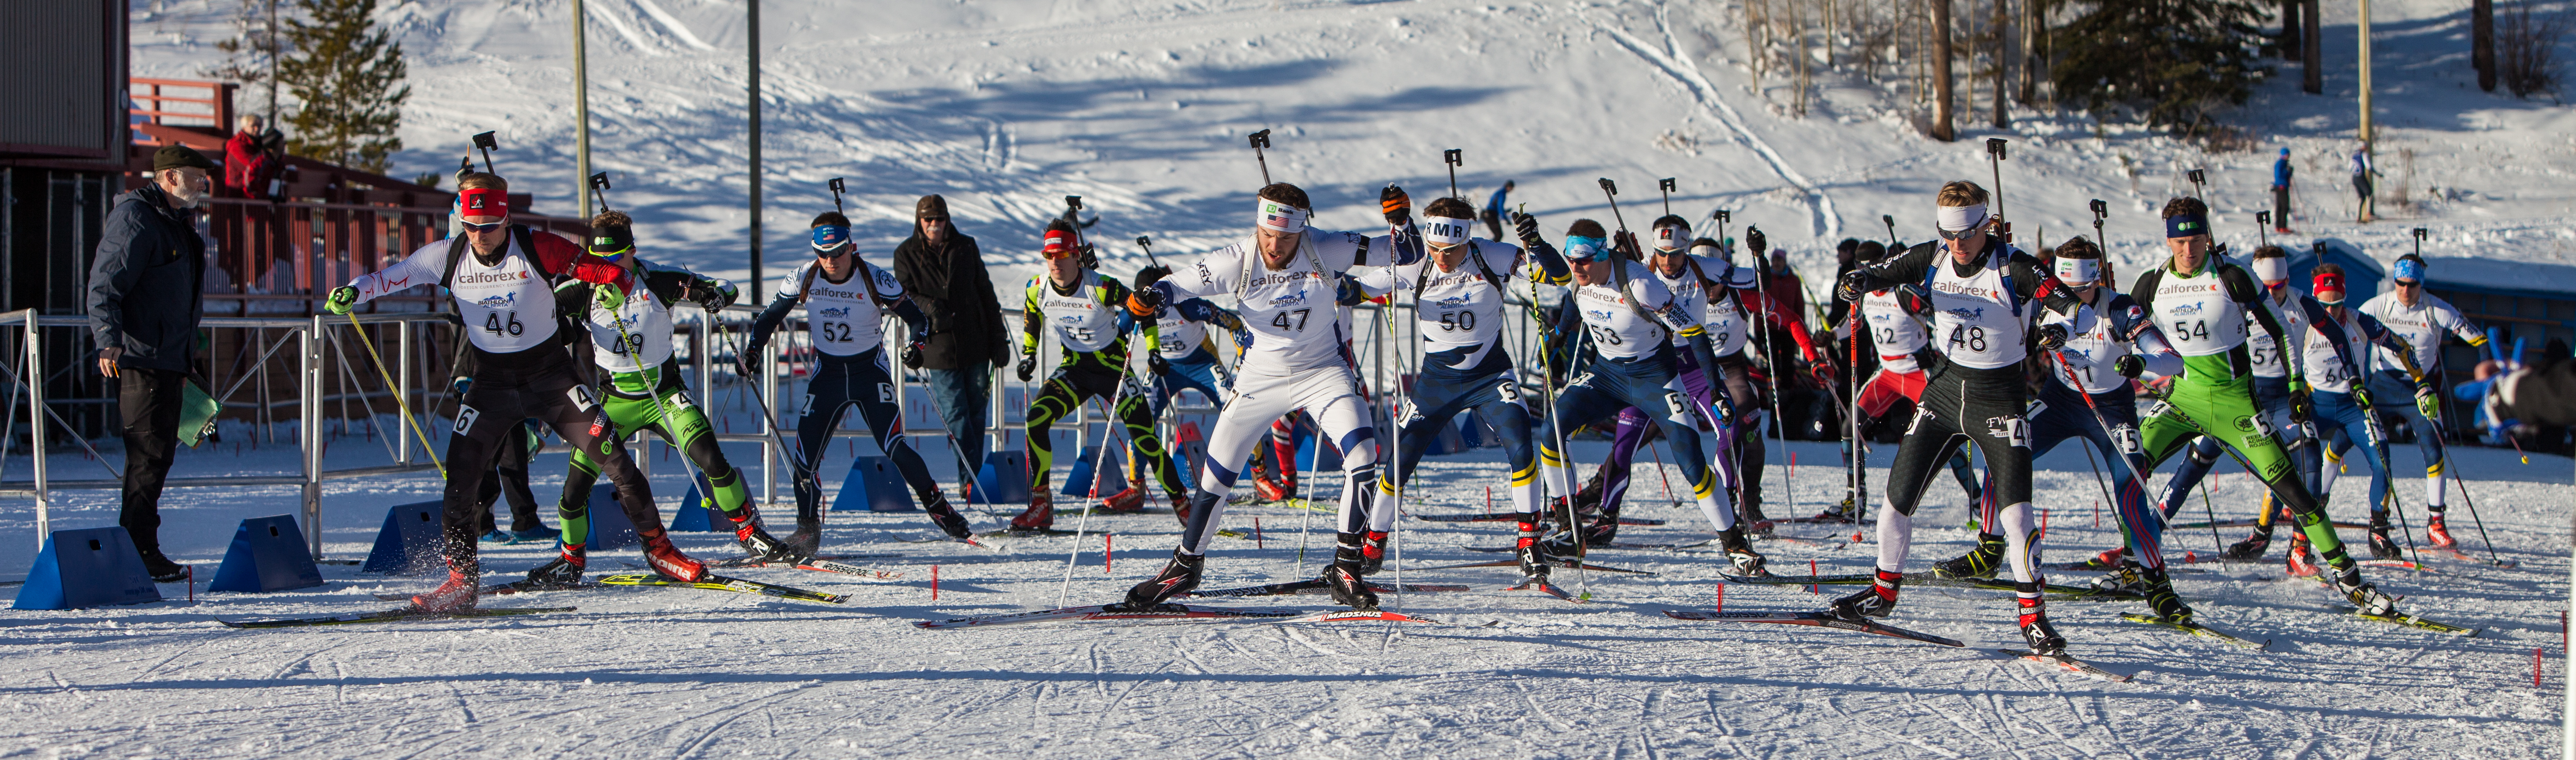 Calforex cup canmore